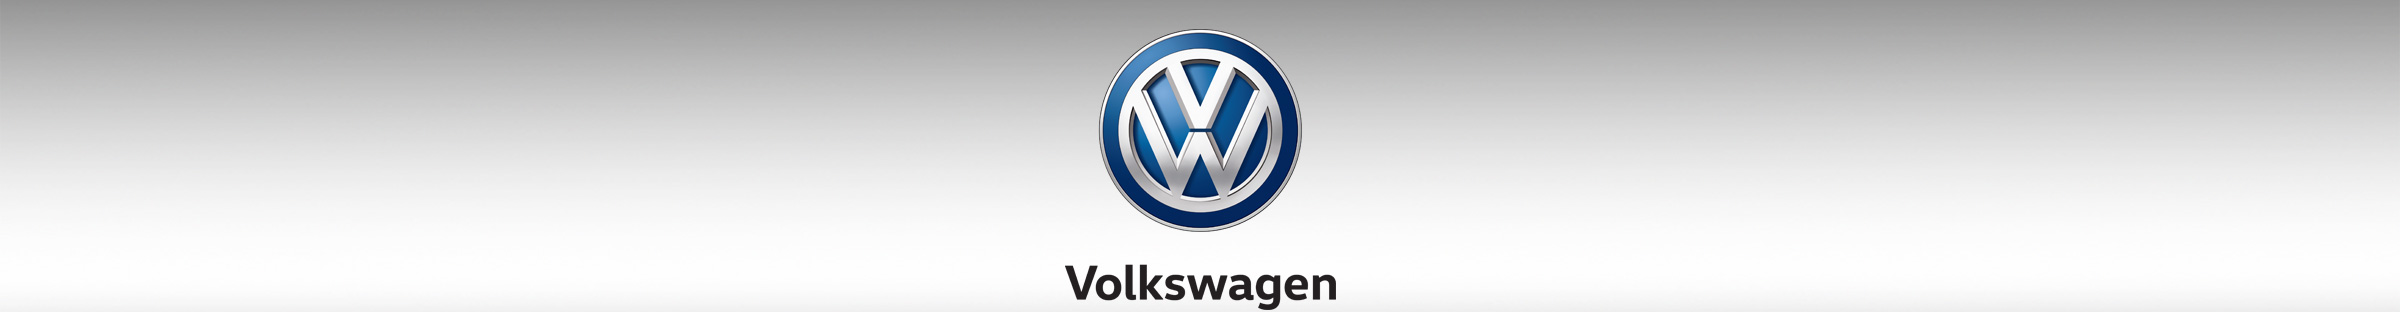 Some of the Featured Models from Volkswagen include the Beetle and Tiguan are now at the 2018 Sacramento International Auto Show.